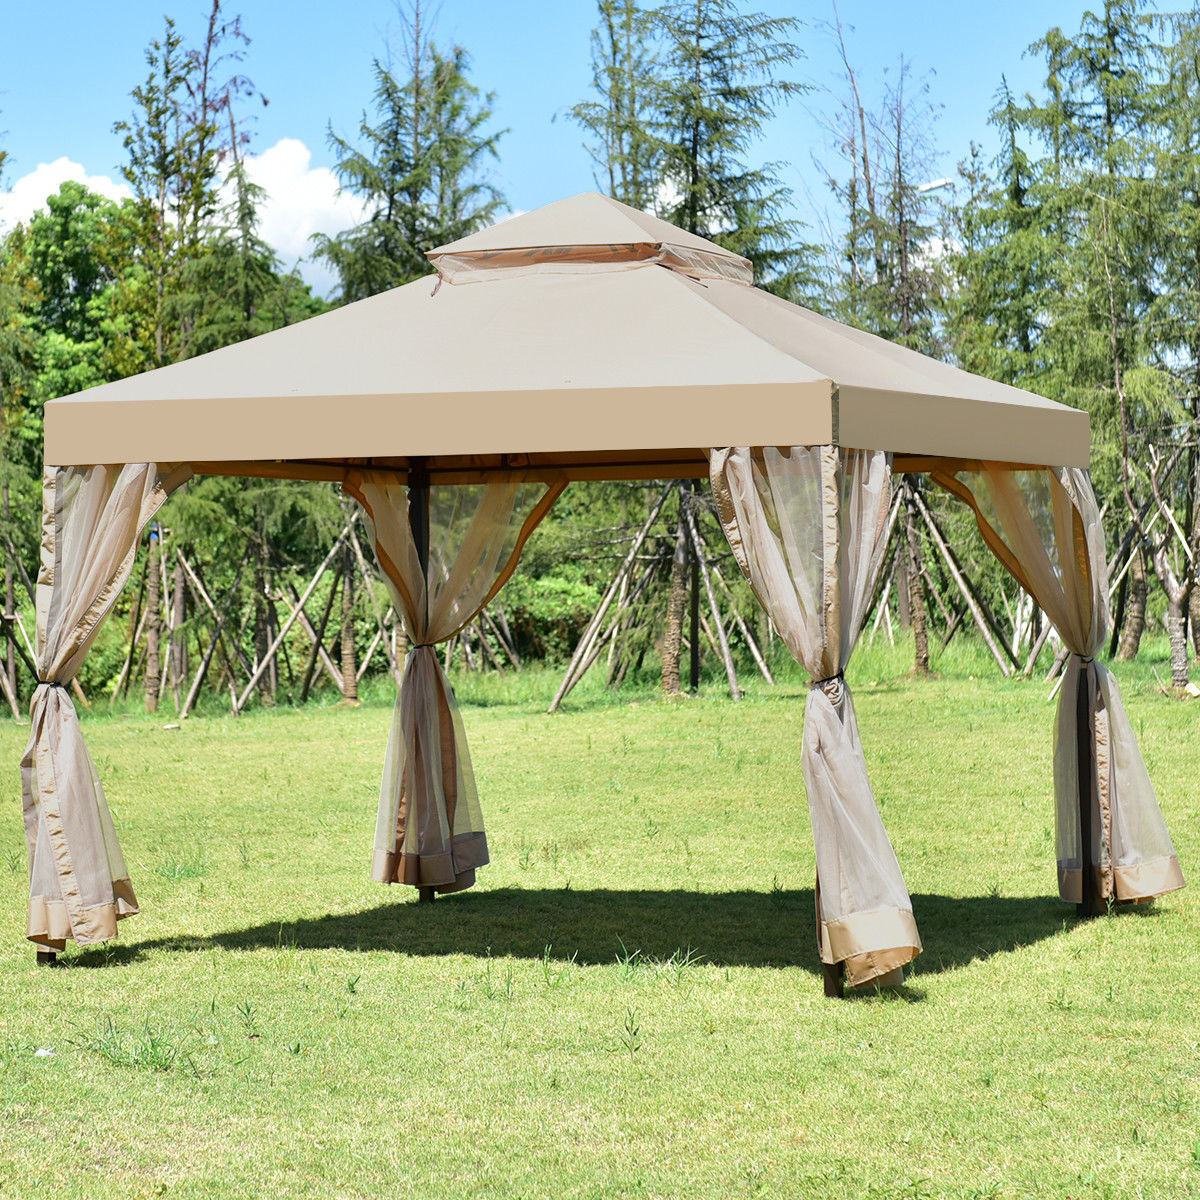 Costway Outdoor 2-Tier 10'x10' Gazebo Canopy Shelter Awning Tent Patio Garden Brown